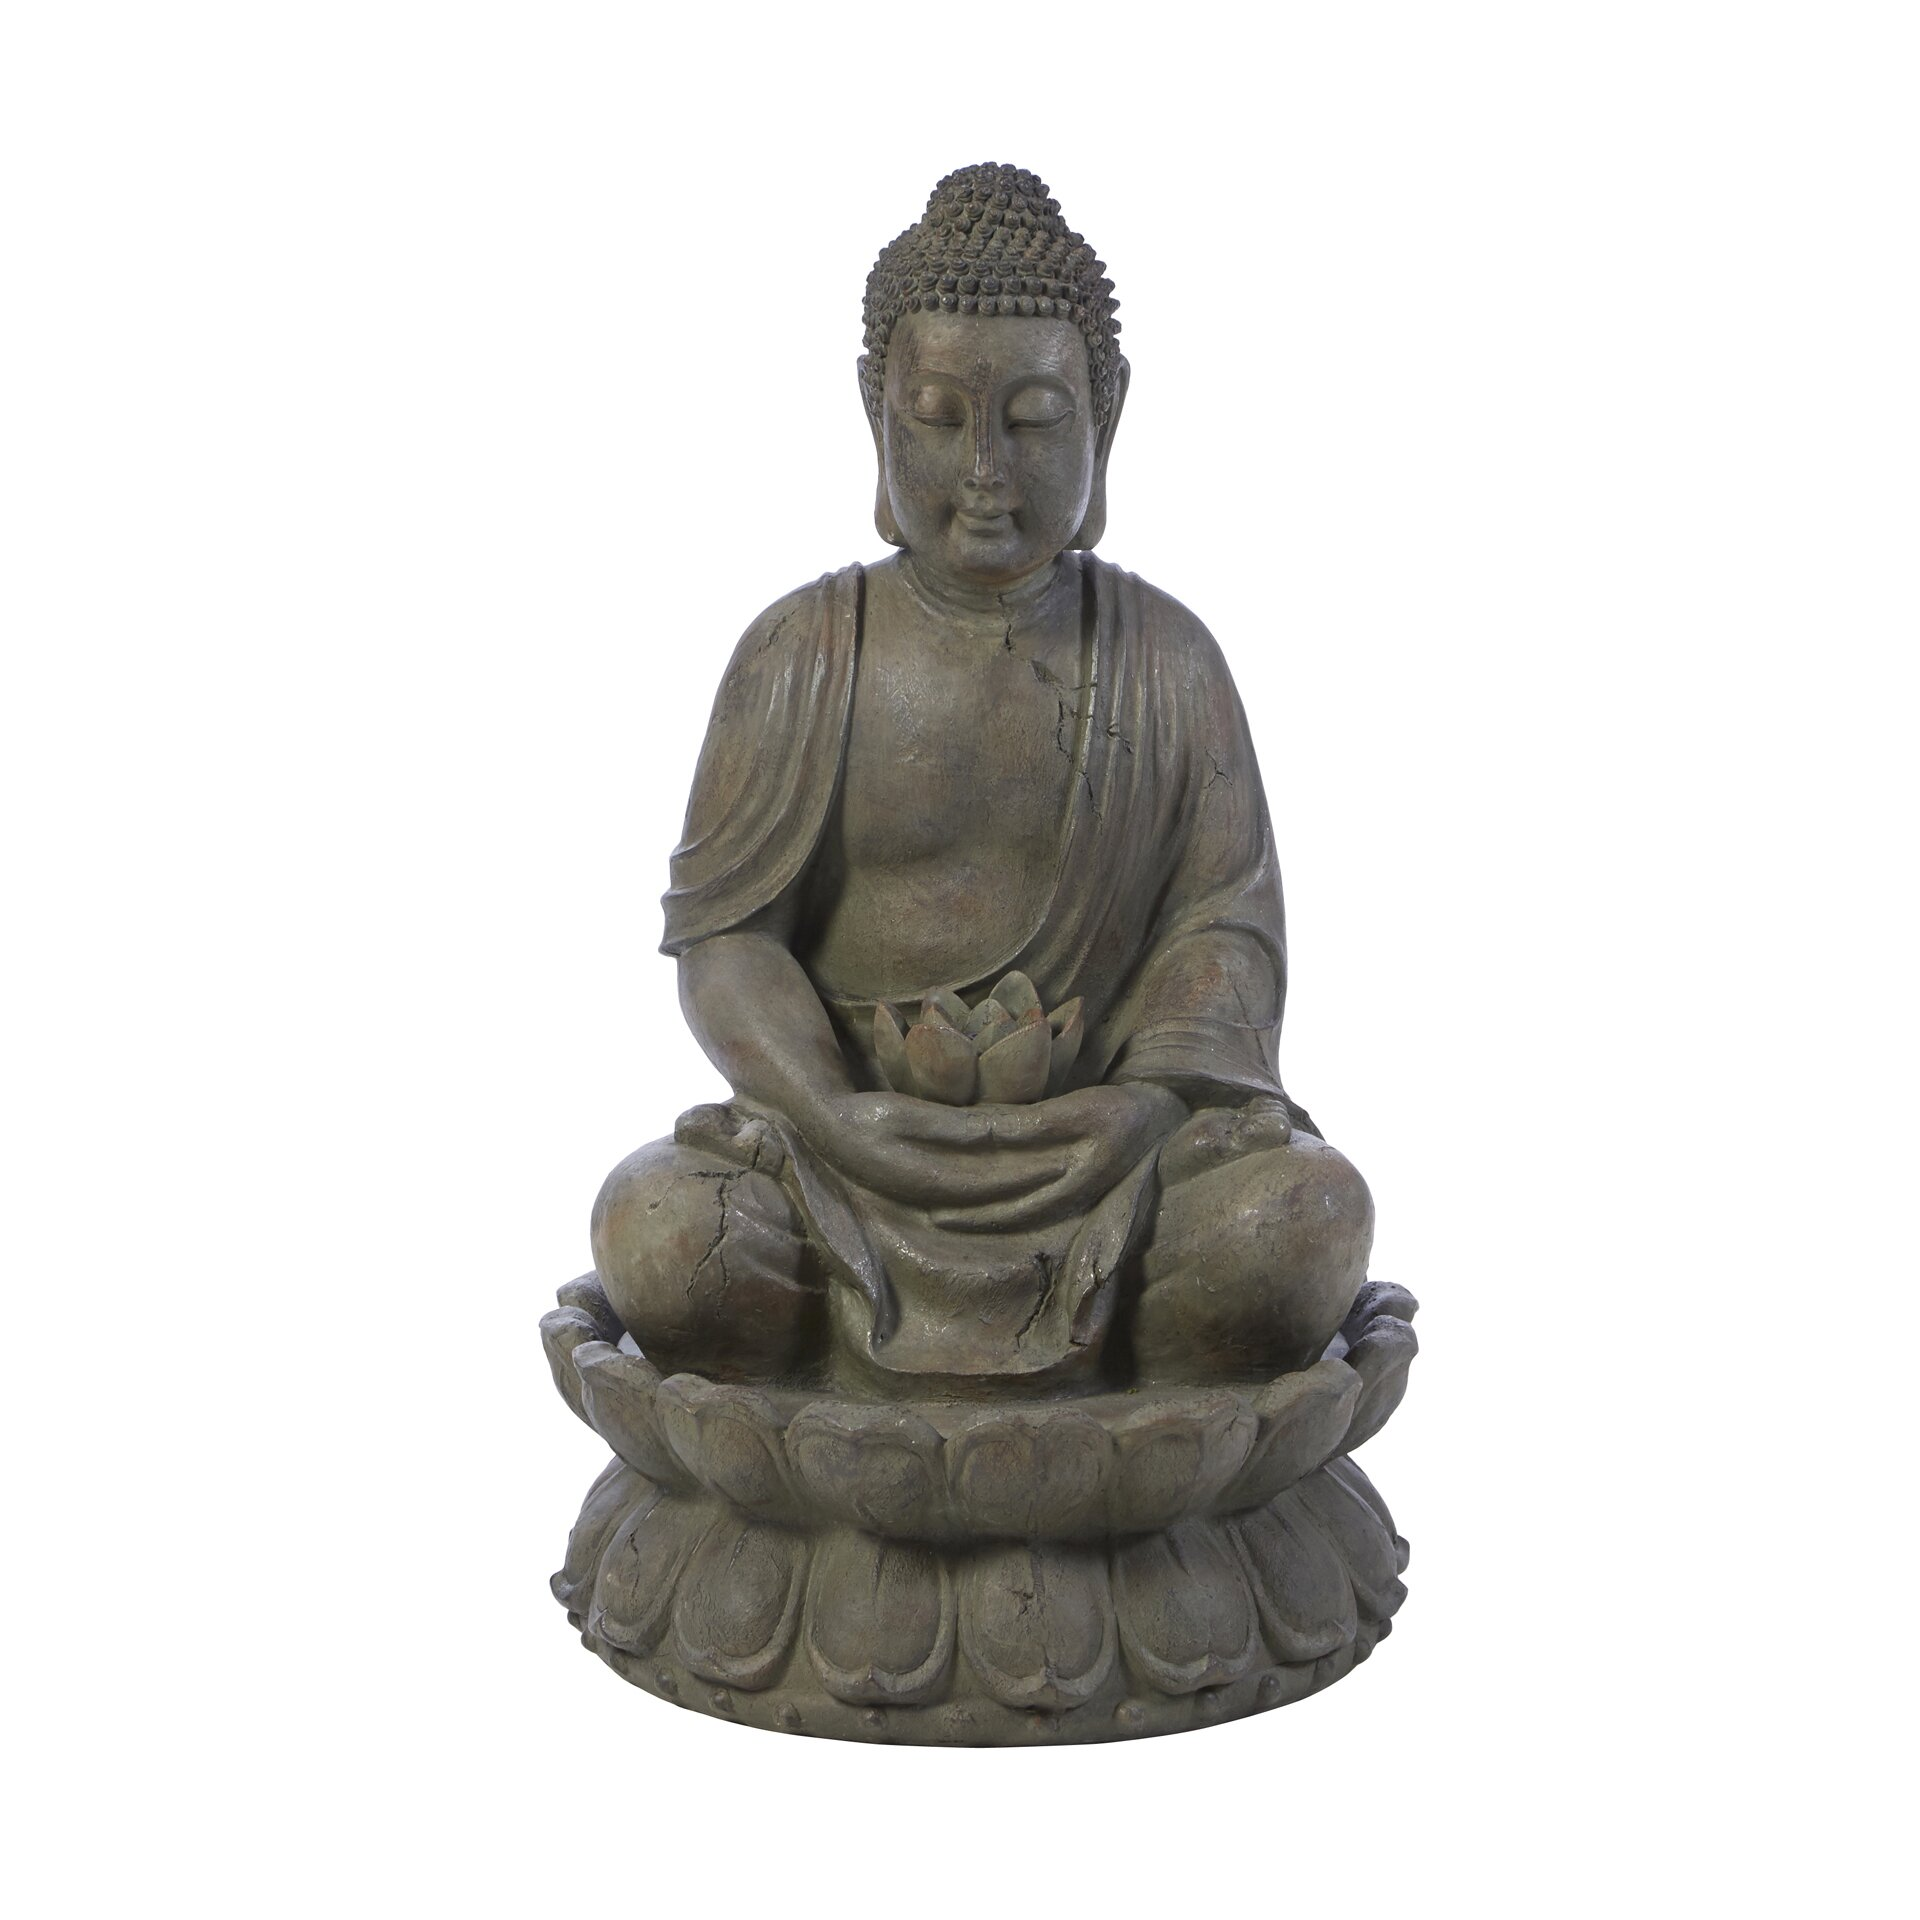 buddhist single men in fountain Crafts and activities from my buddhist dharma  find this pin and more on buddhist crafts and lessons by  office stress anxiety tips,depression in men how to.